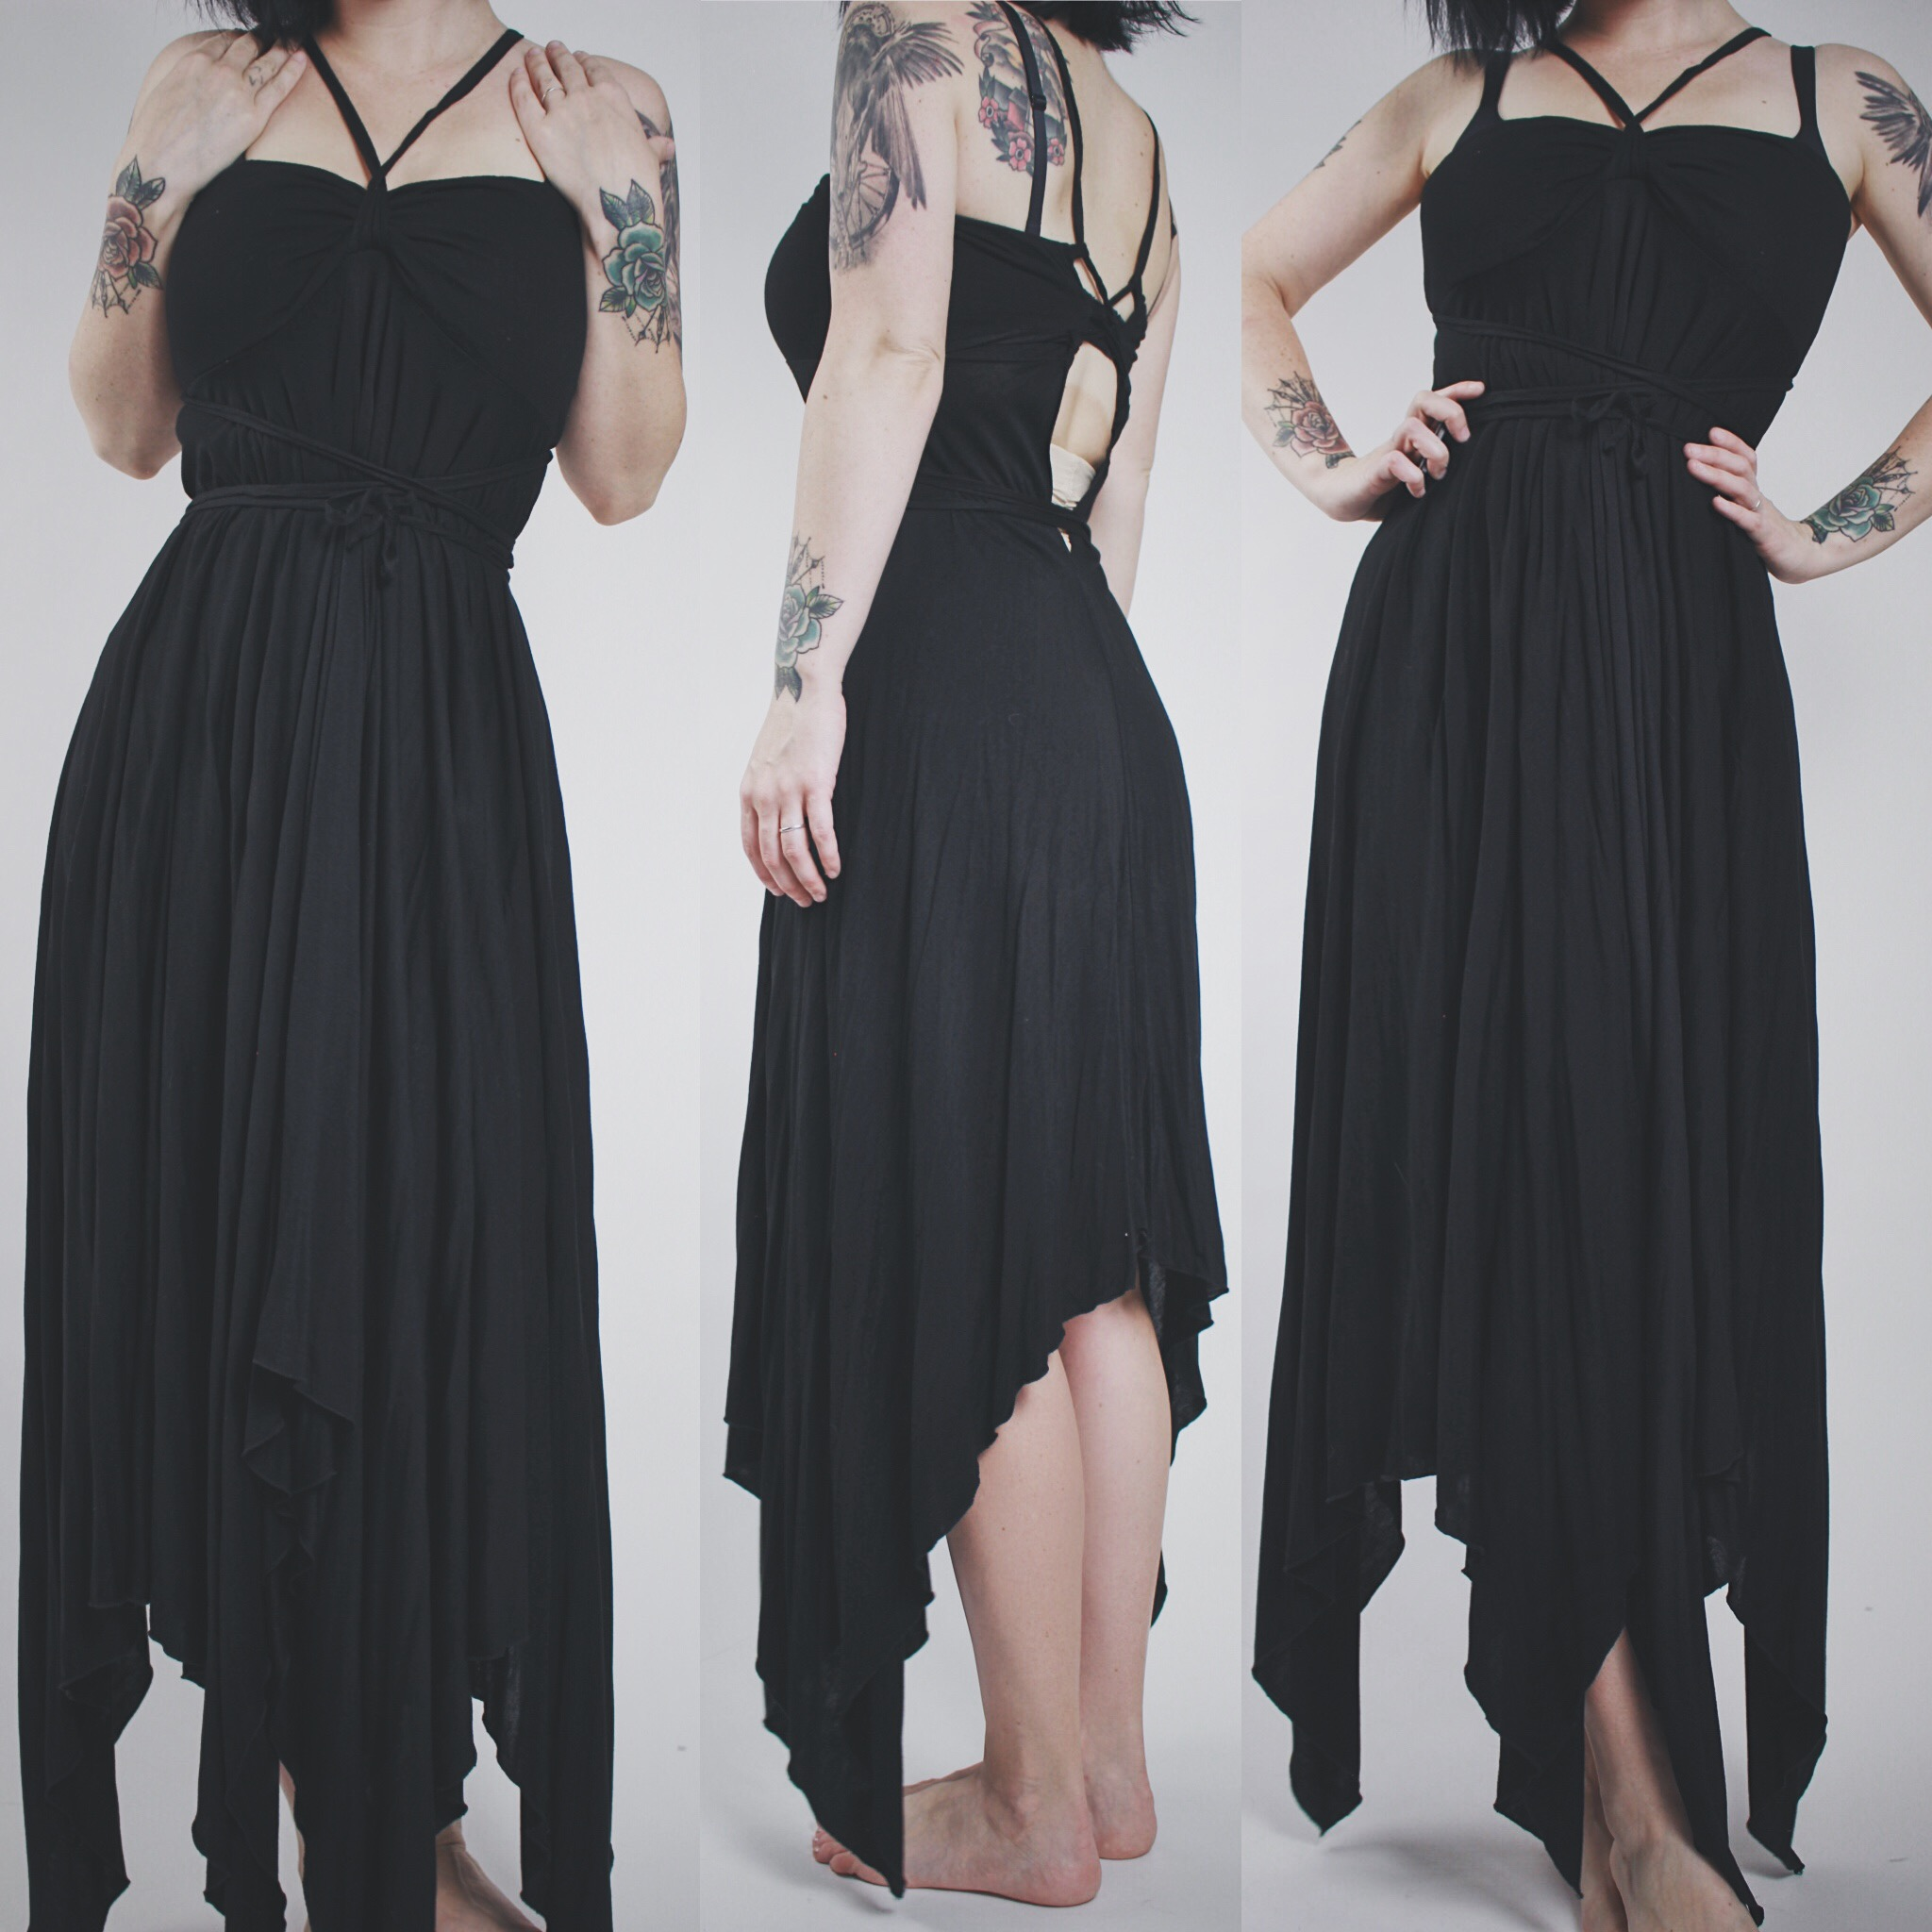 0d46756f92 CLAIMED @vamps420 - Vintage 90s Black Multi-Way Strappy Asymmetrical Maxi  Dress